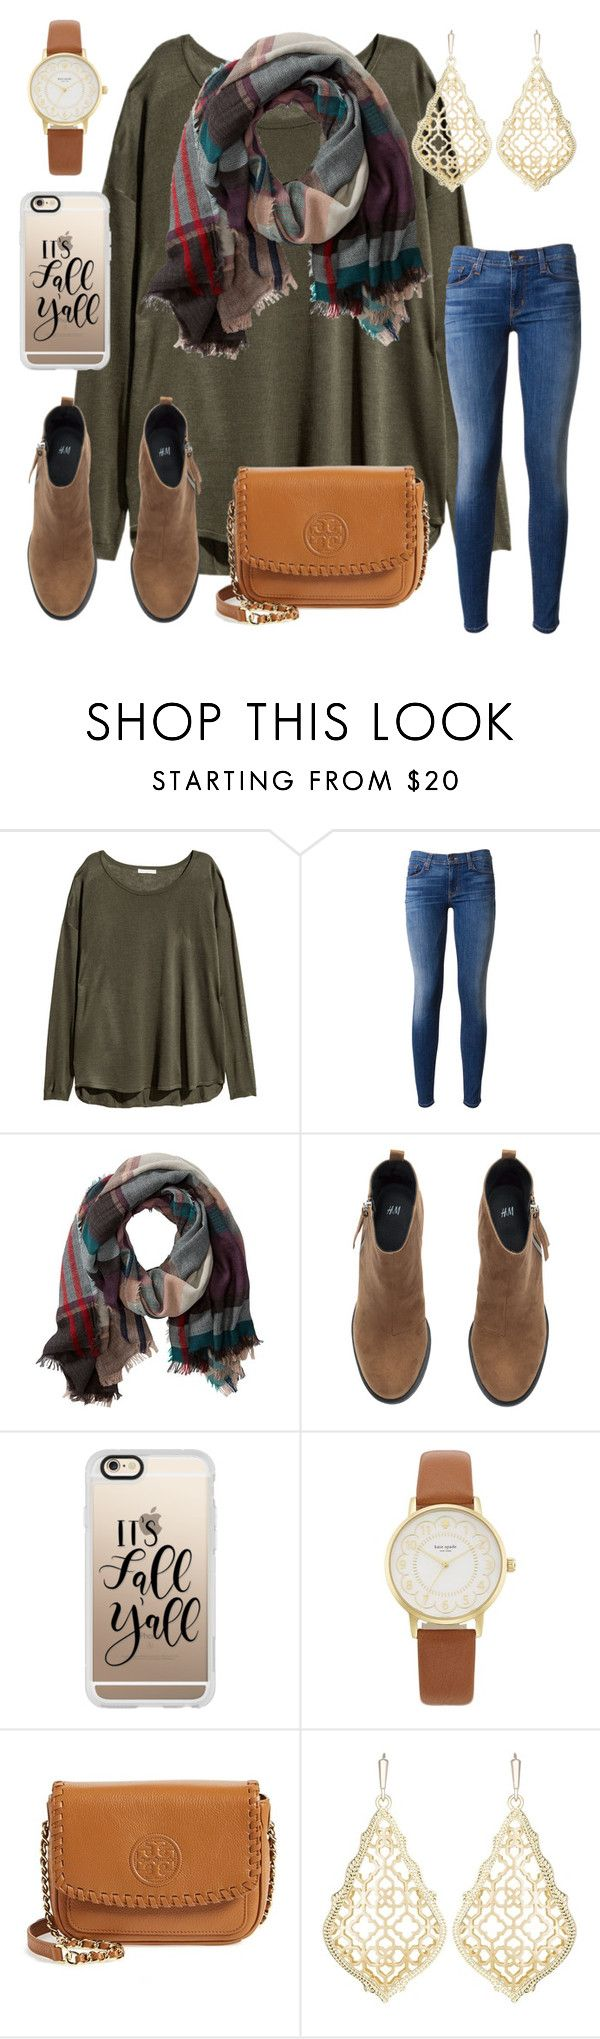 """comment if you went to church today"" by ctrygrl1999 ❤ liked on Polyvore featuring H&M, Hudson, TravelSmith, Casetify, Kate Spade, Tory Burch and Kendra Scott"